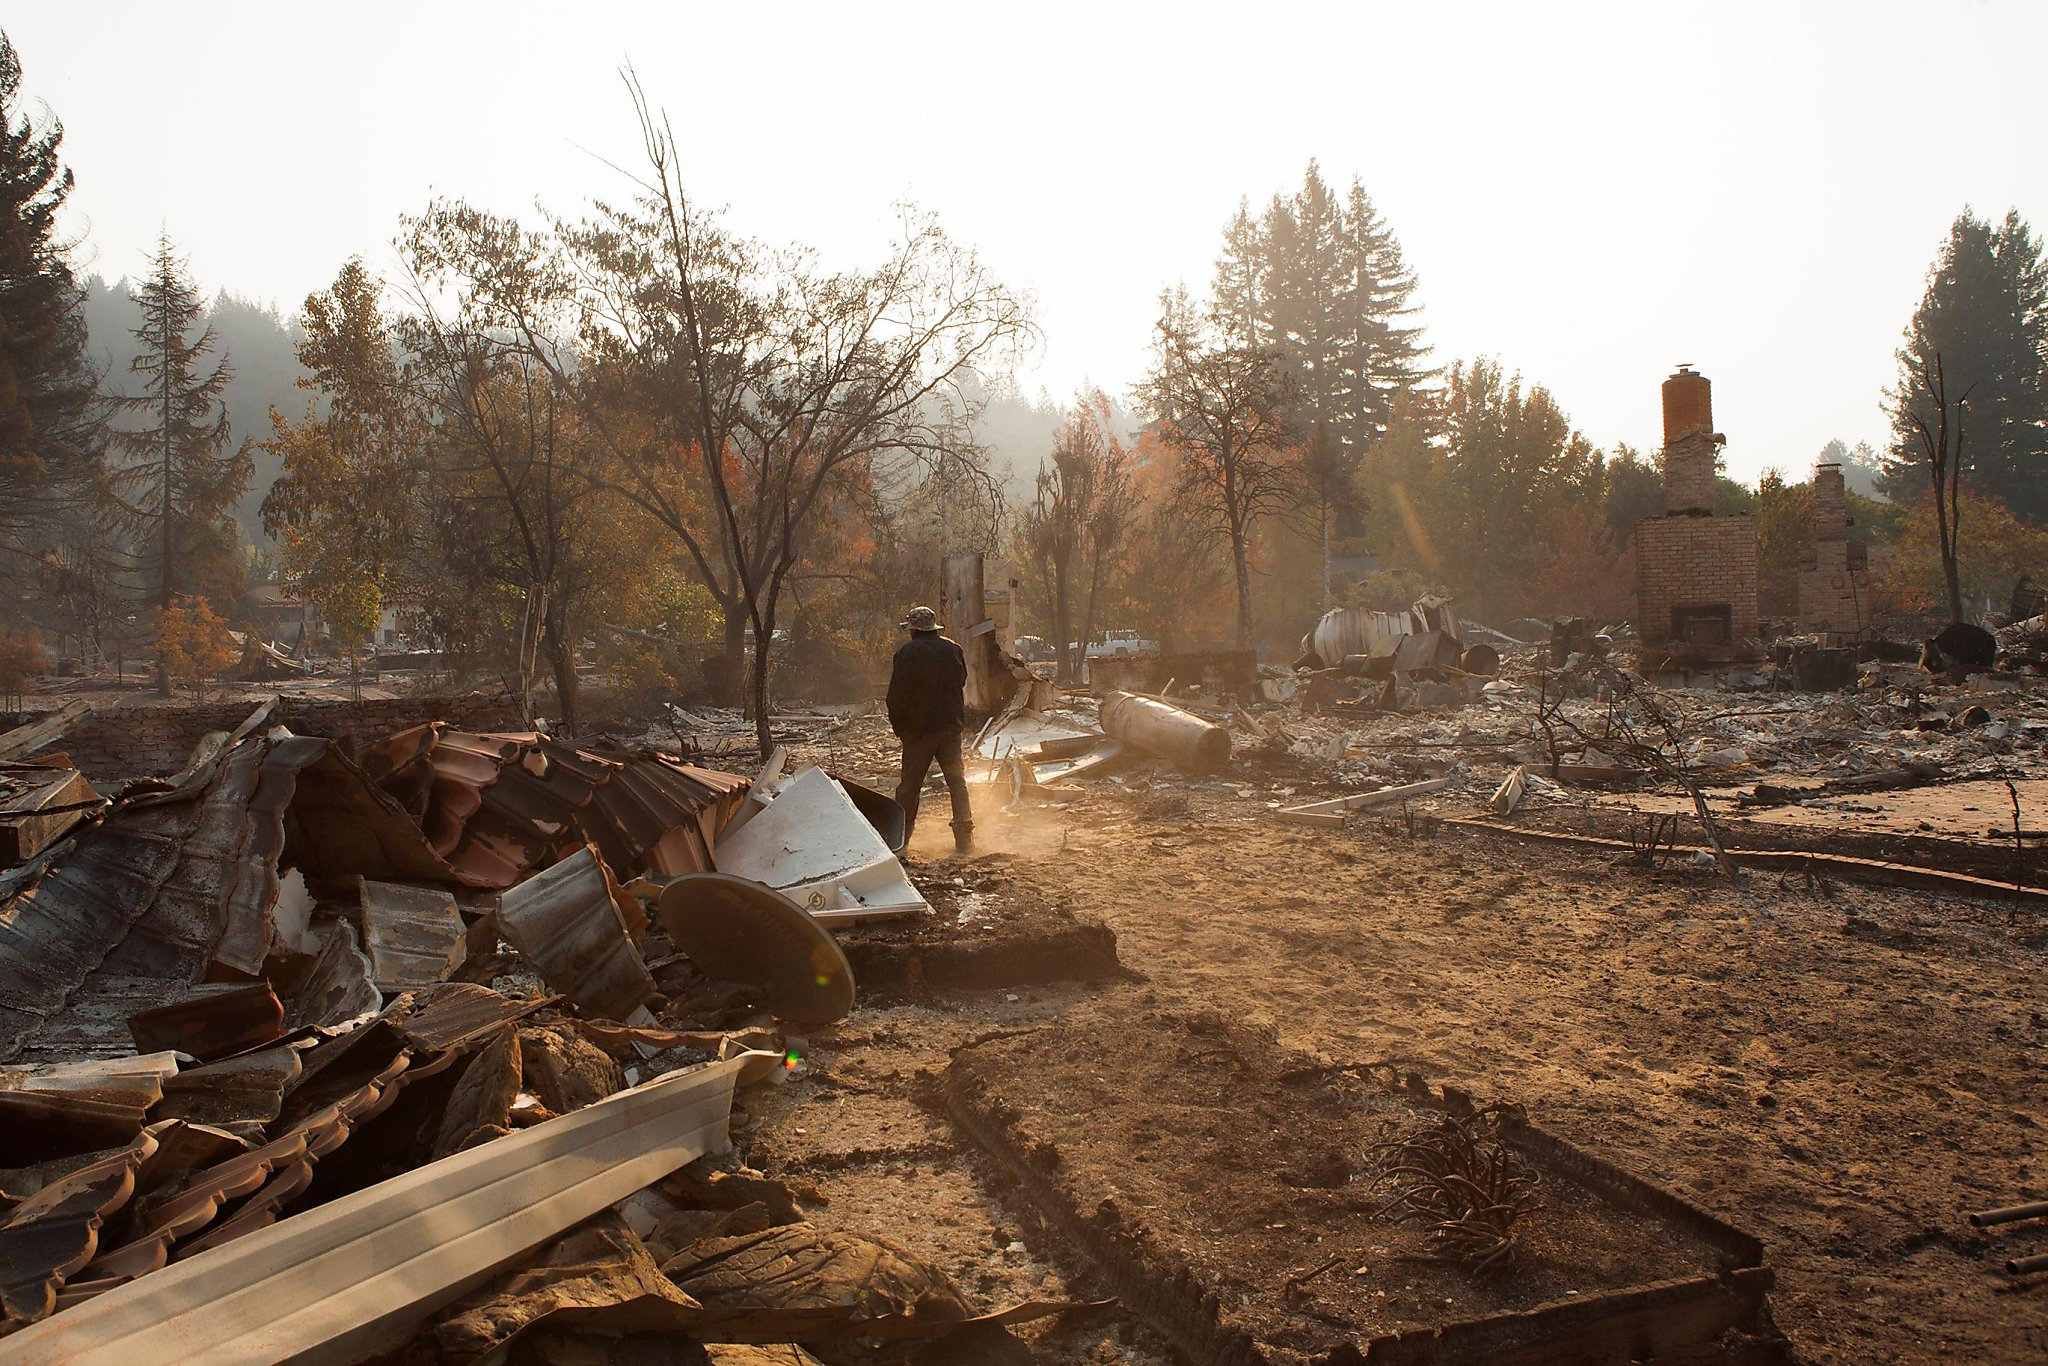 In Sonoma County, some flee, some defy continuing blaze